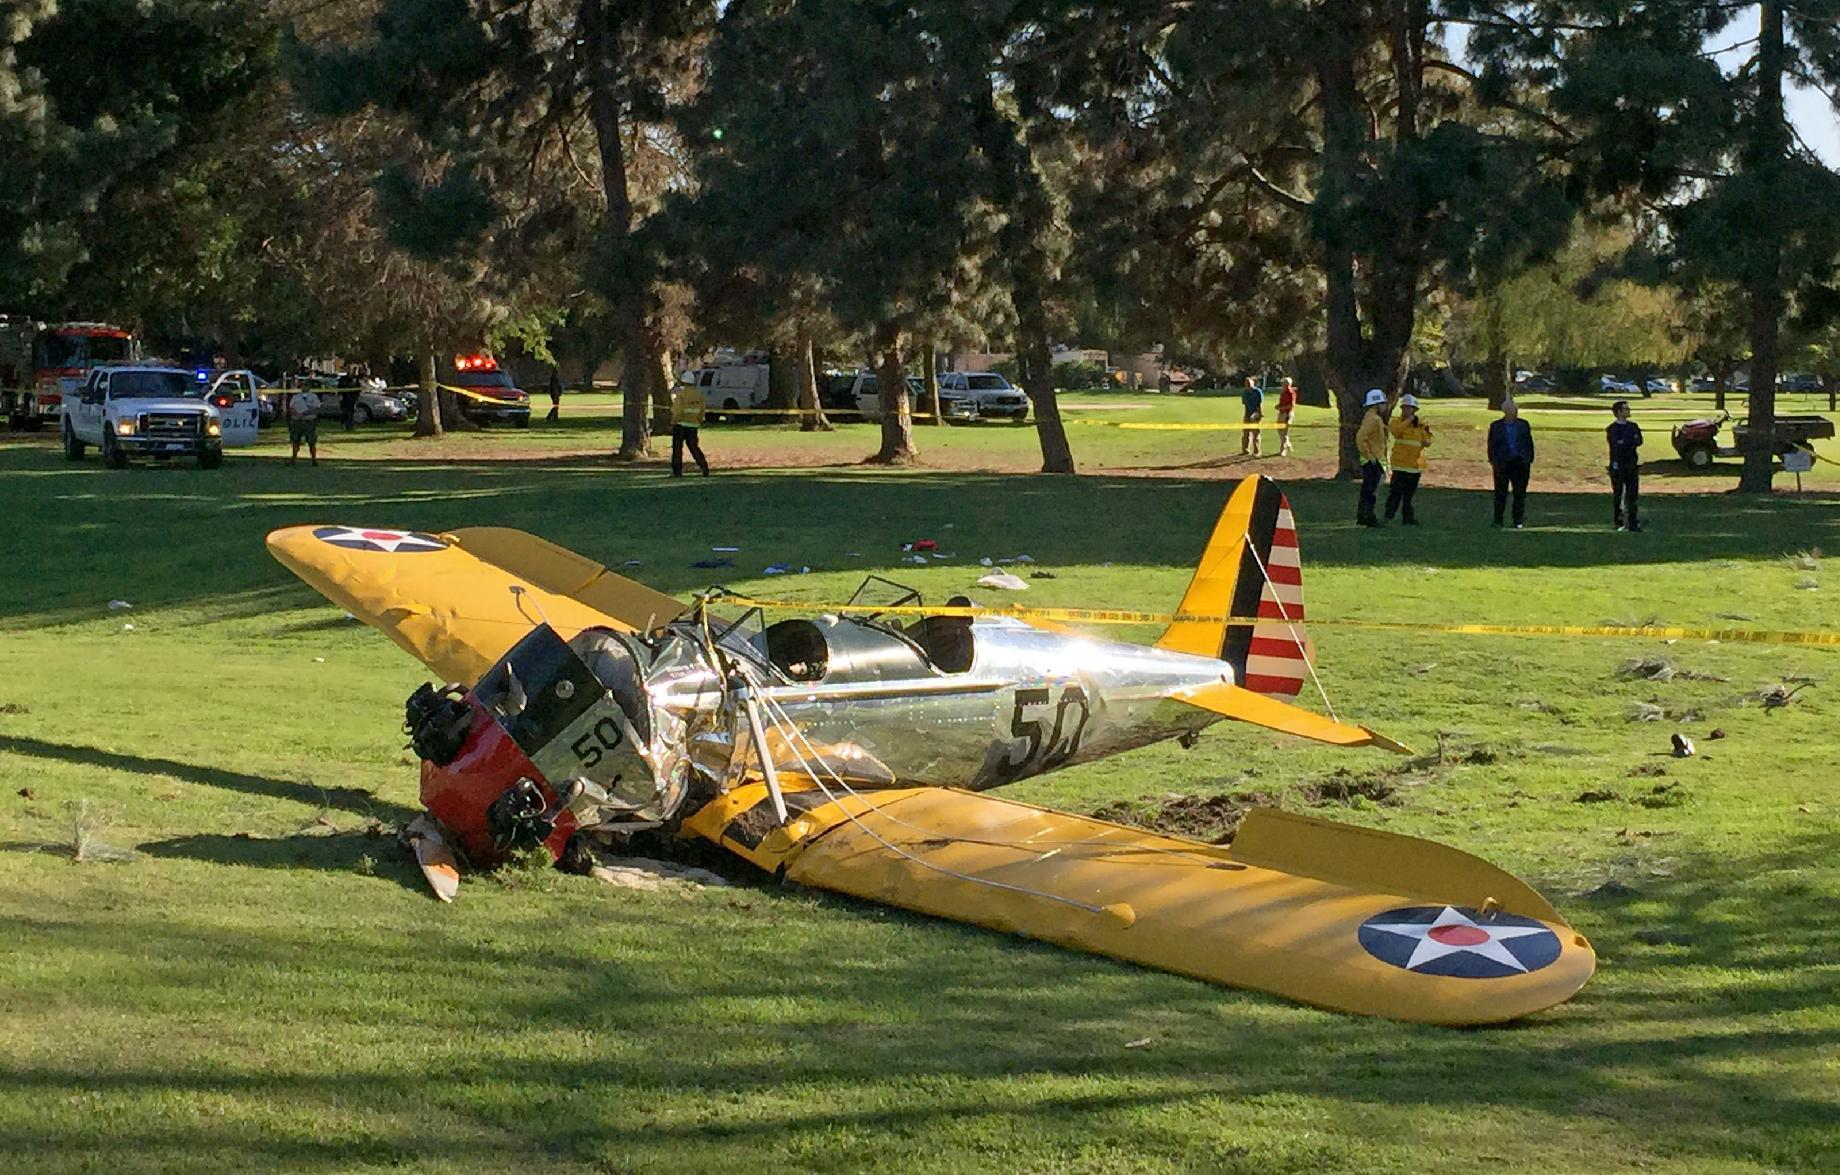 Harrison Ford crash lands vintage plane on golf course